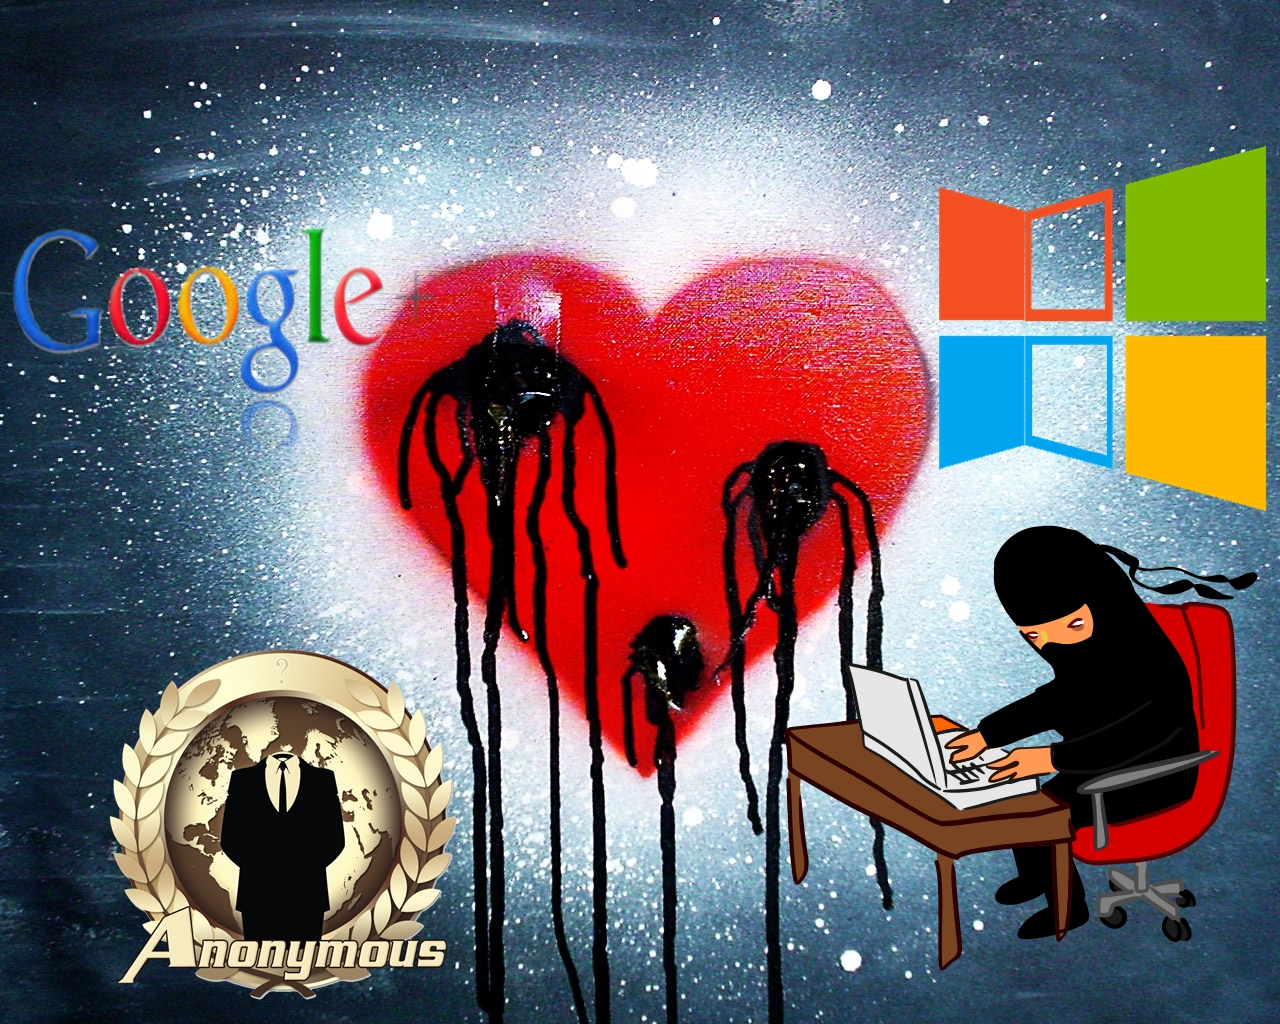 heartbleed-cyber-events-you-might-have-missed